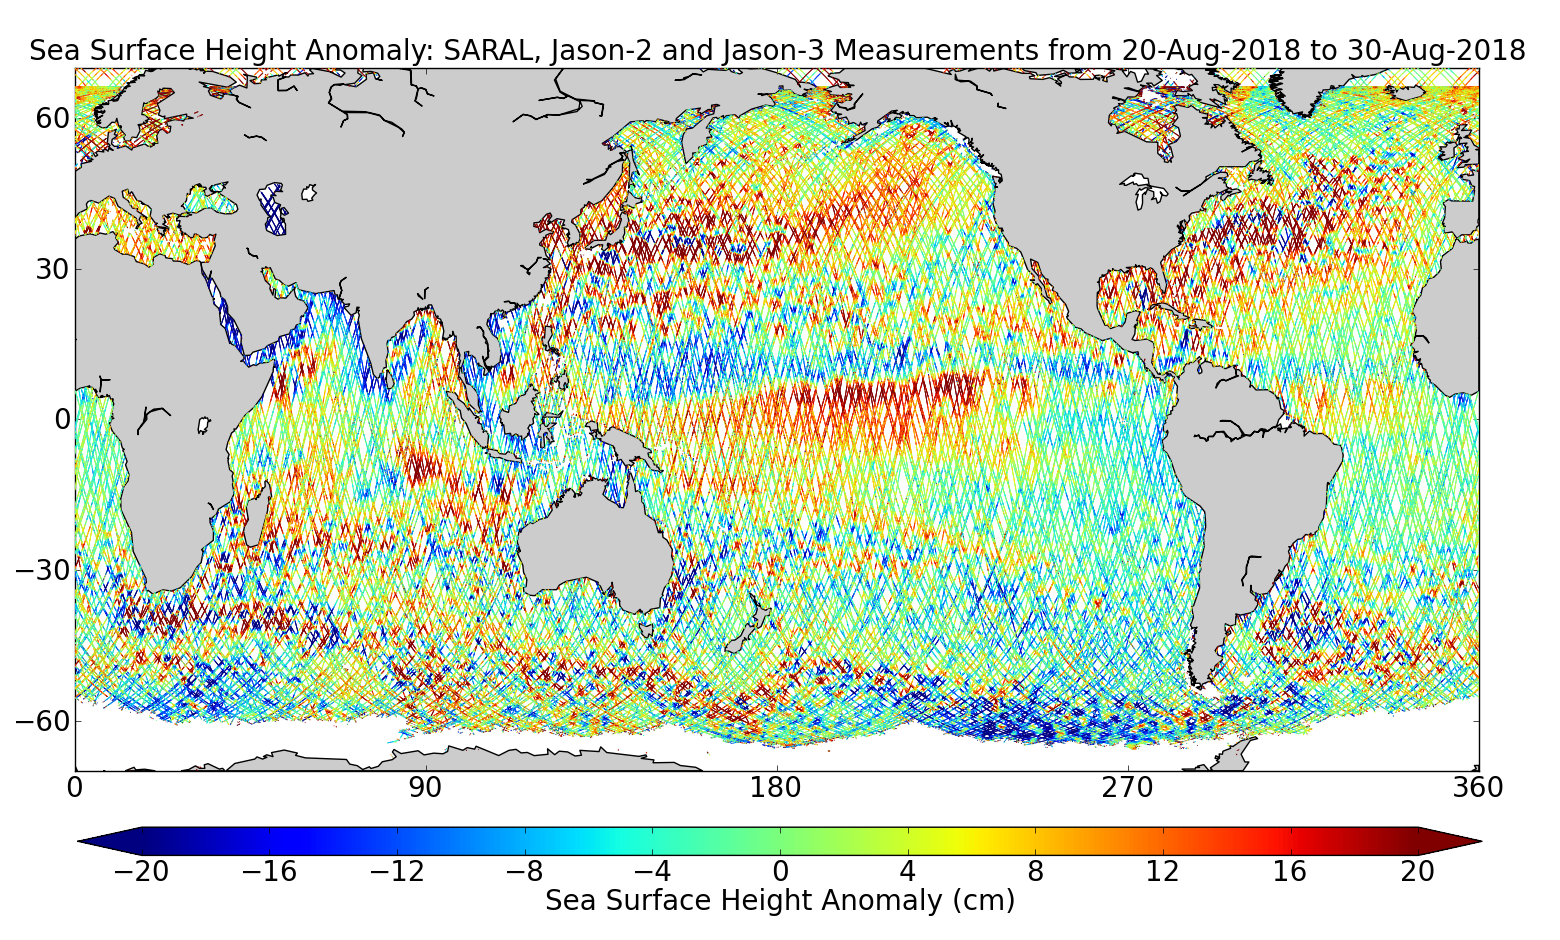 Sea Surface Height Anomaly: SARAL, Jason-2 and Jason-3 Measurements from 20-Aug-2018 to 30-Aug-2018